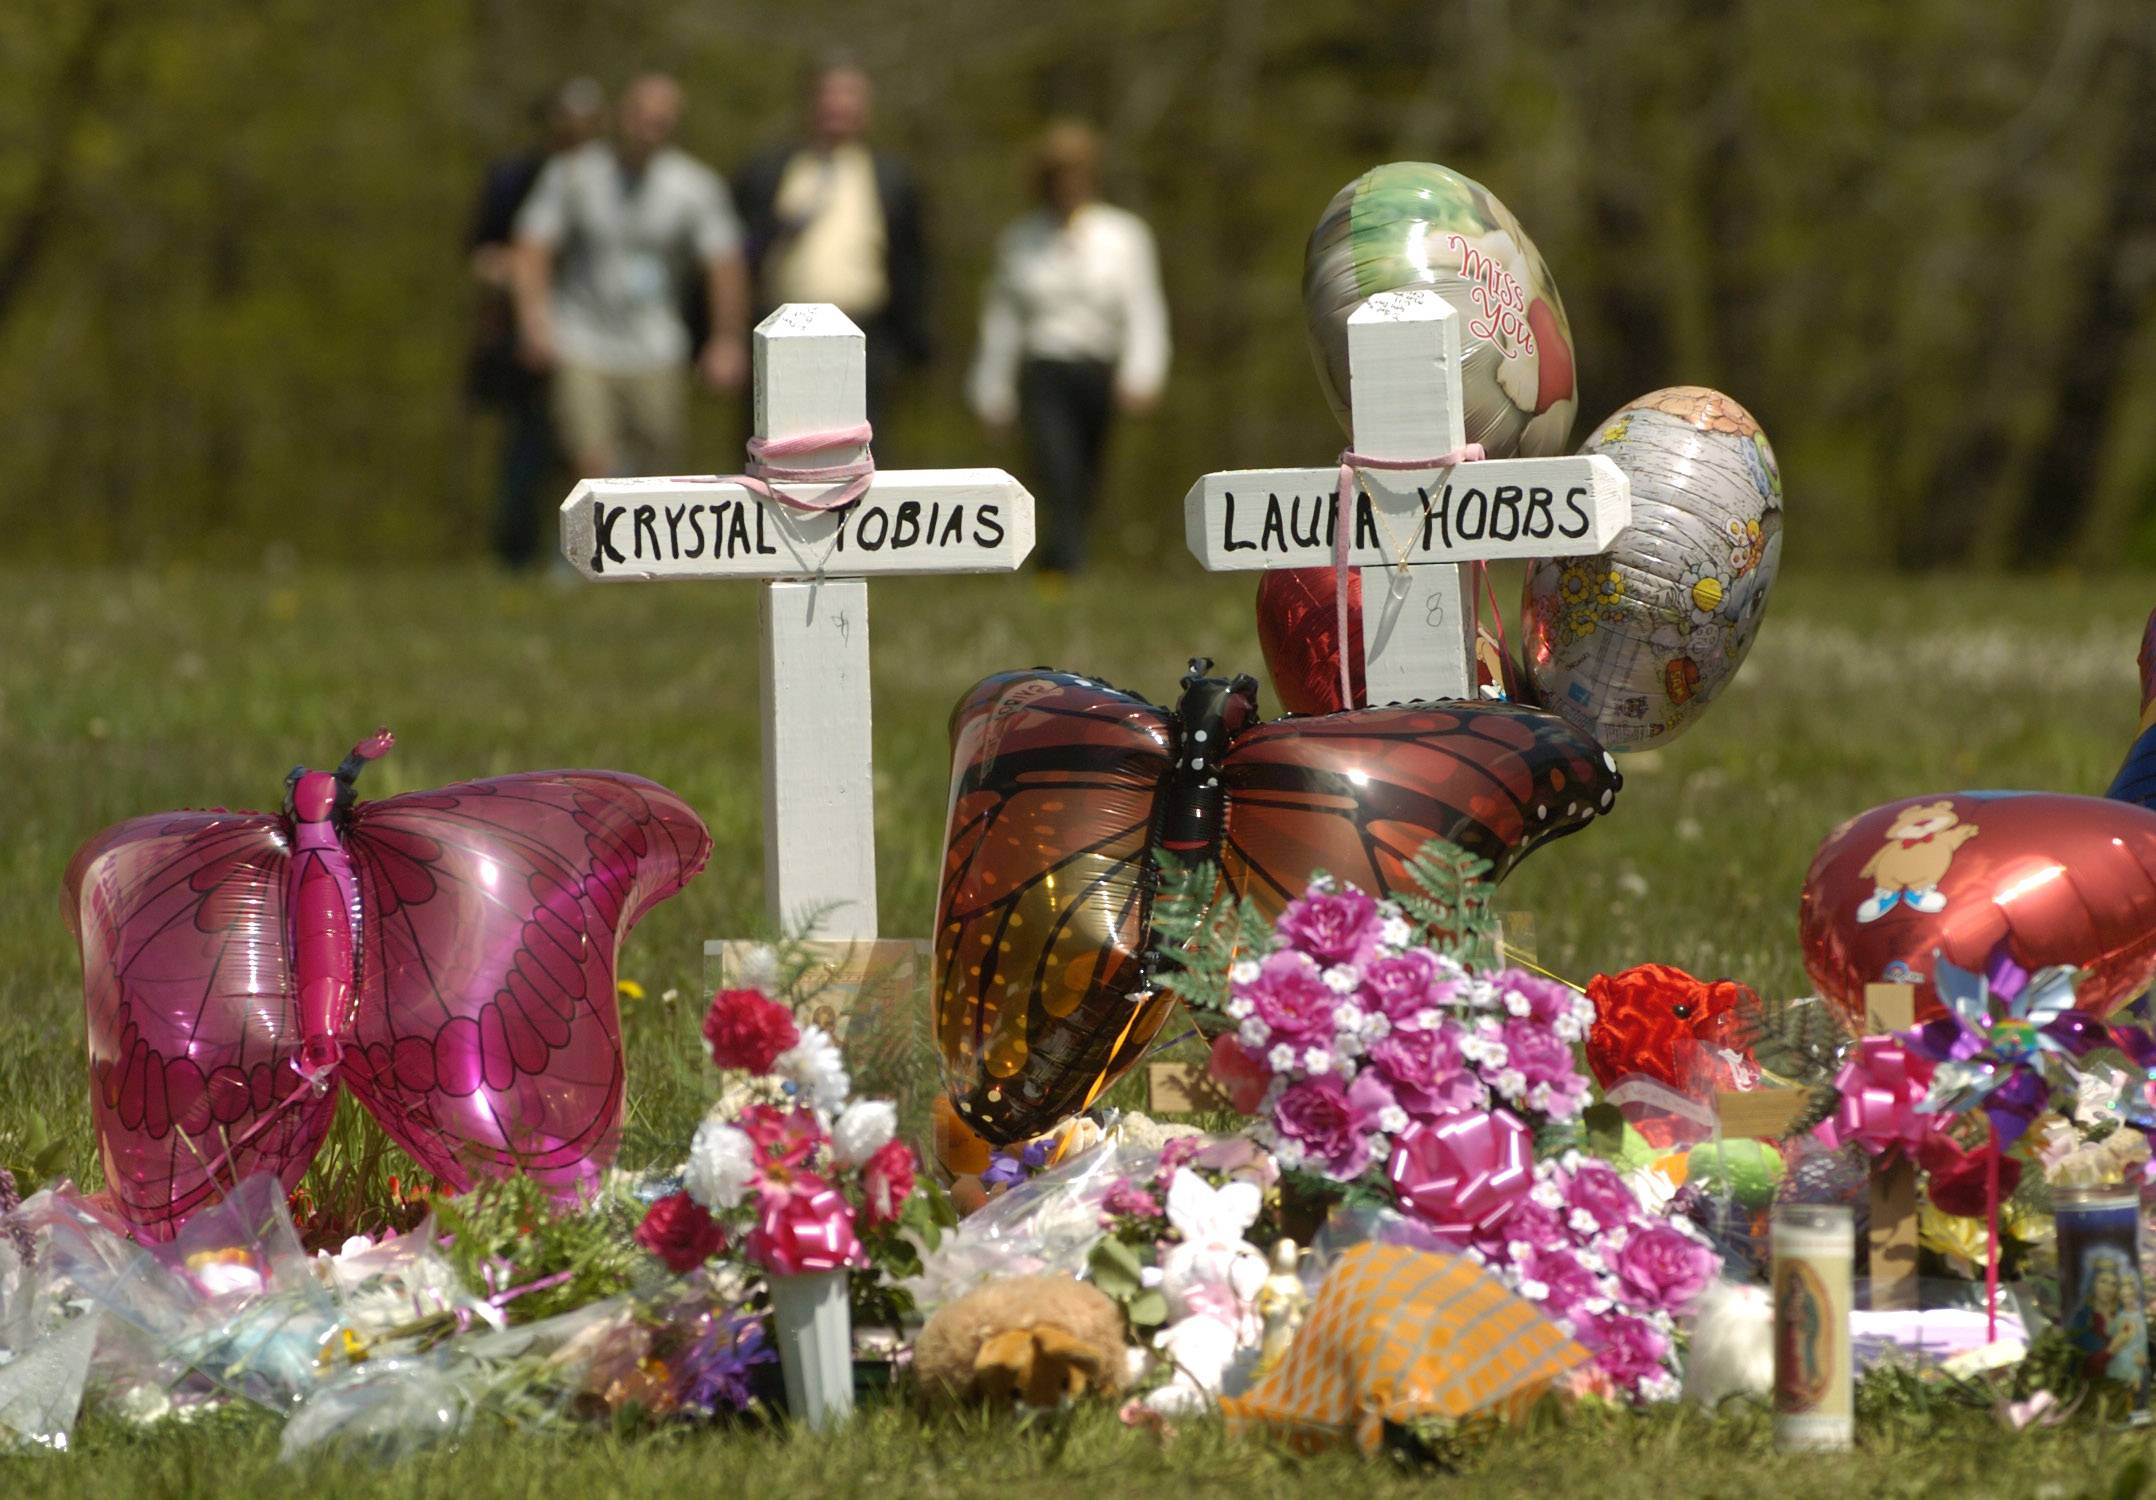 A memorial was erected in 2005 at the entrance of Beulah Park in Zion, where Krystal Tobias and Laura Hobbs were found murdered.